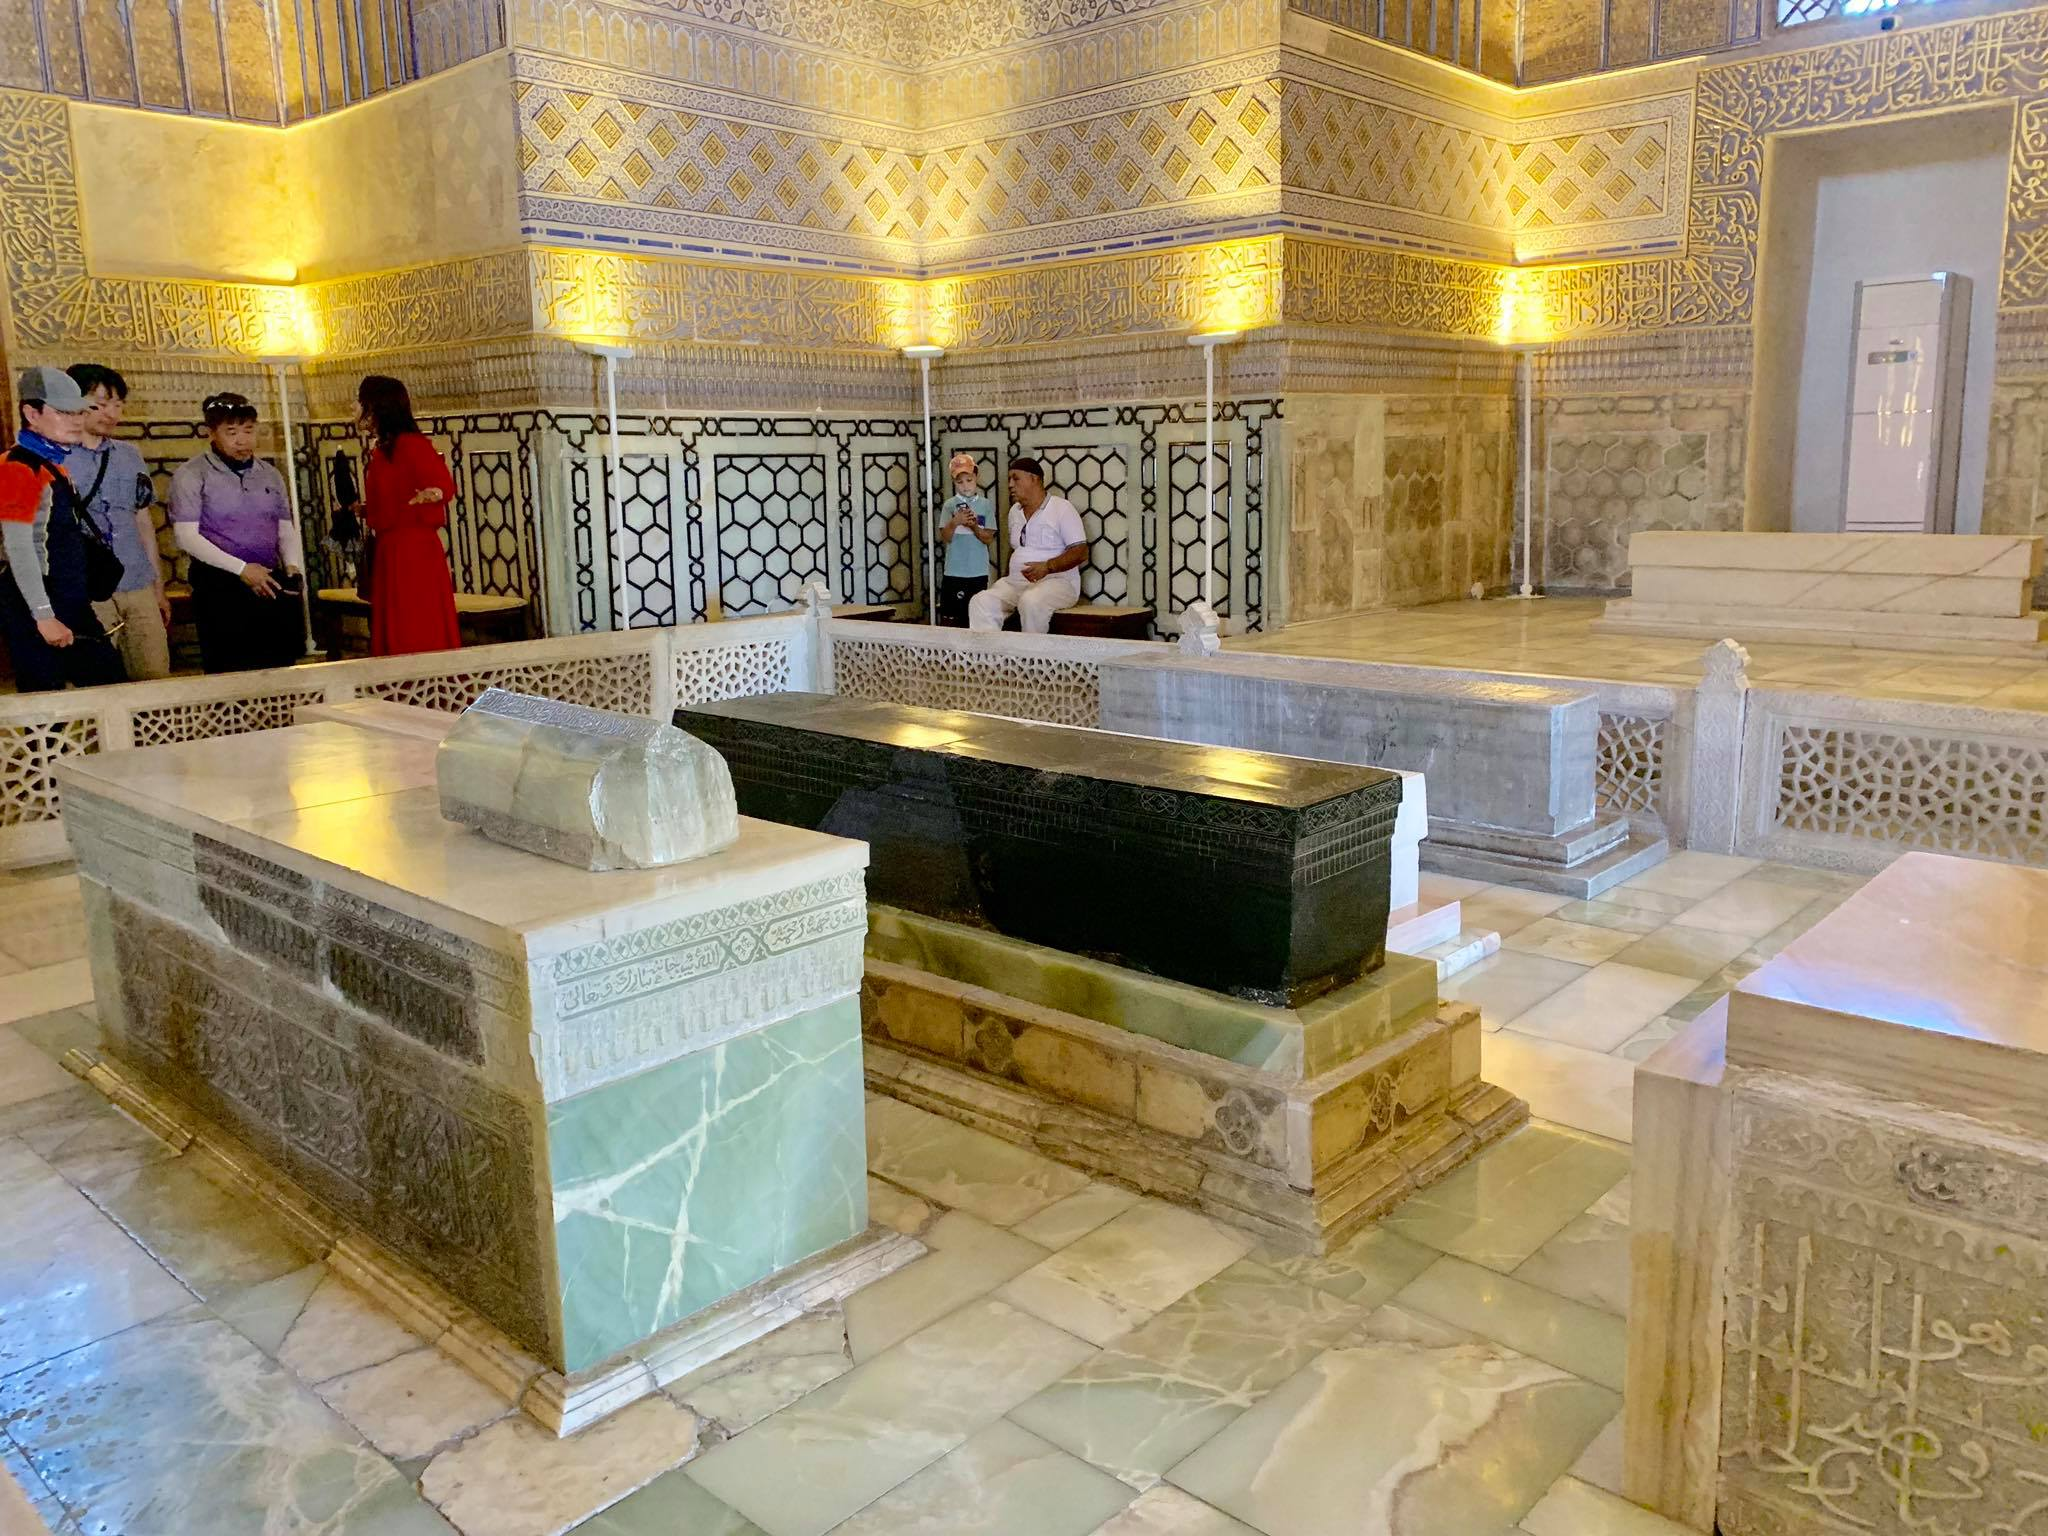 Kach Solo Travels in 2019 Hello from Samarqand  Samarkand in the southeastern part of Uzbekistan3.jpg